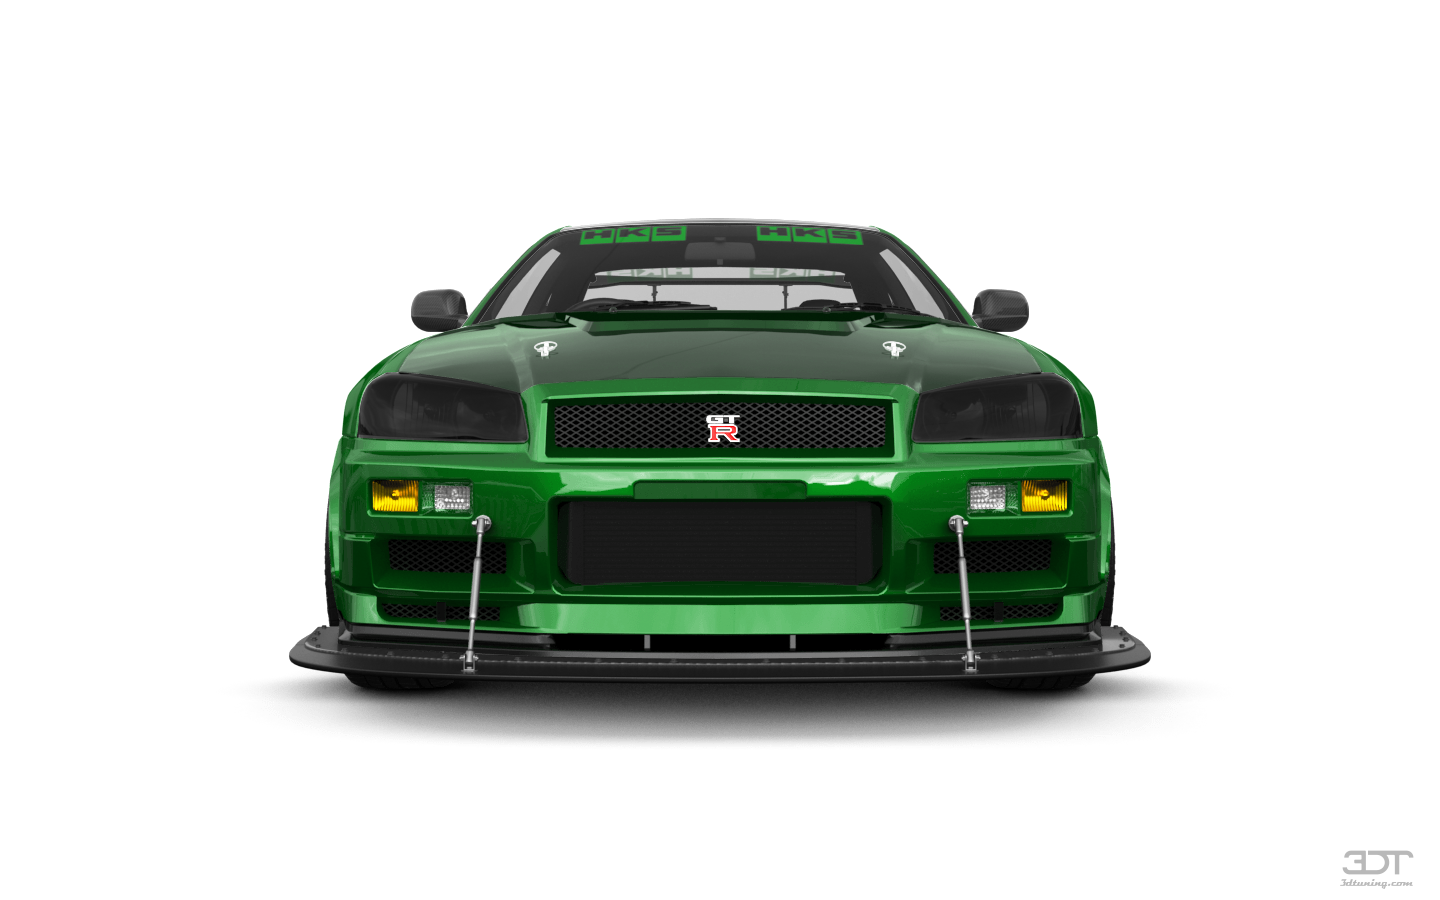 Nissan Skyline GT-R 2 Door Coupe 2000